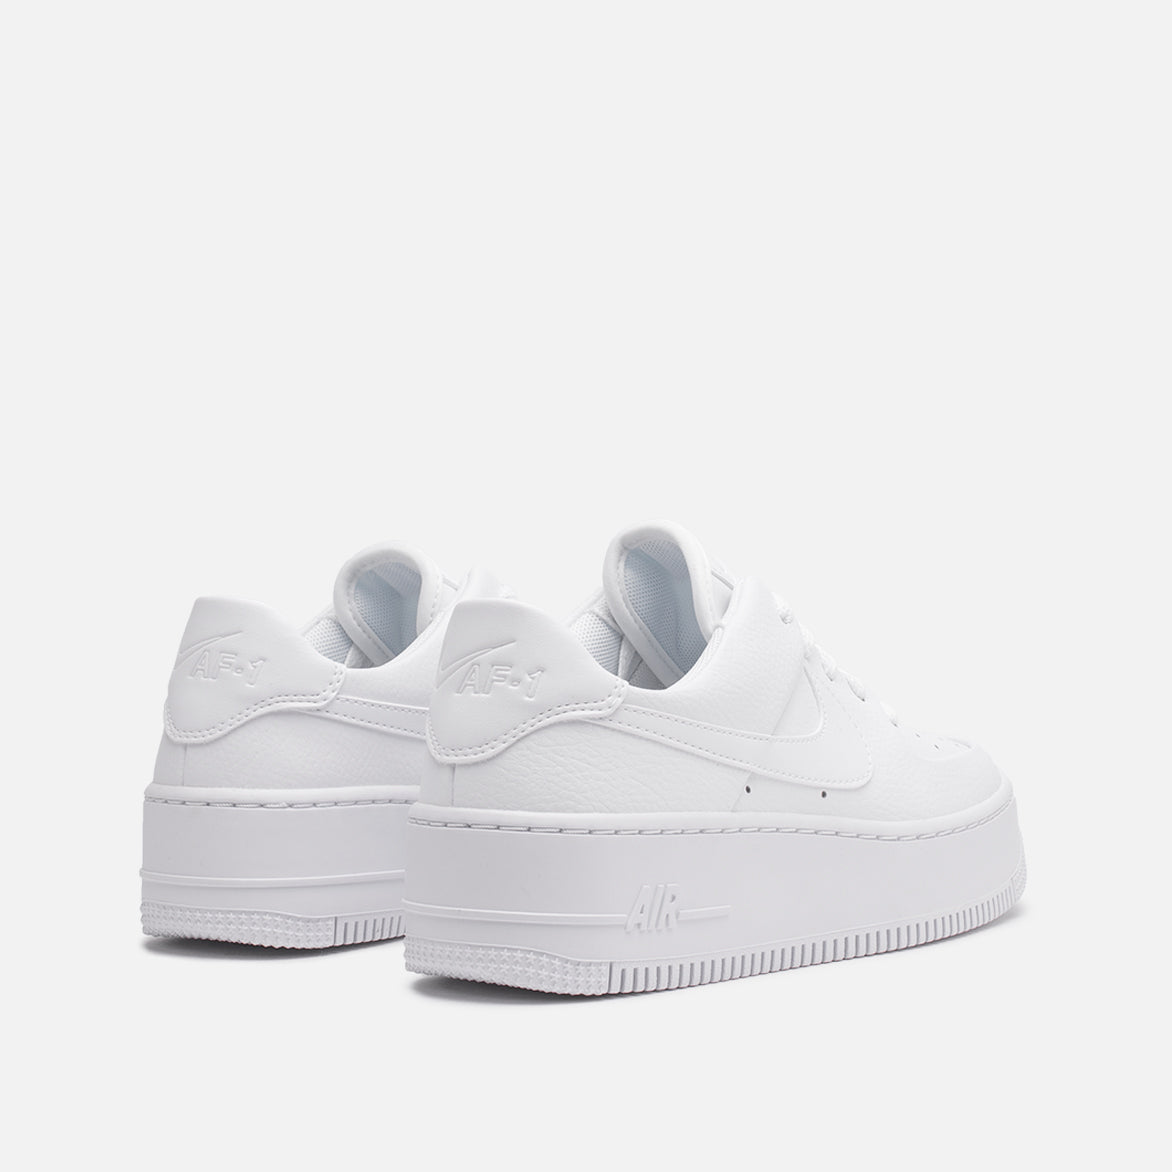 WMNS AIR FORCE 1 SAGE LOW - WHITE